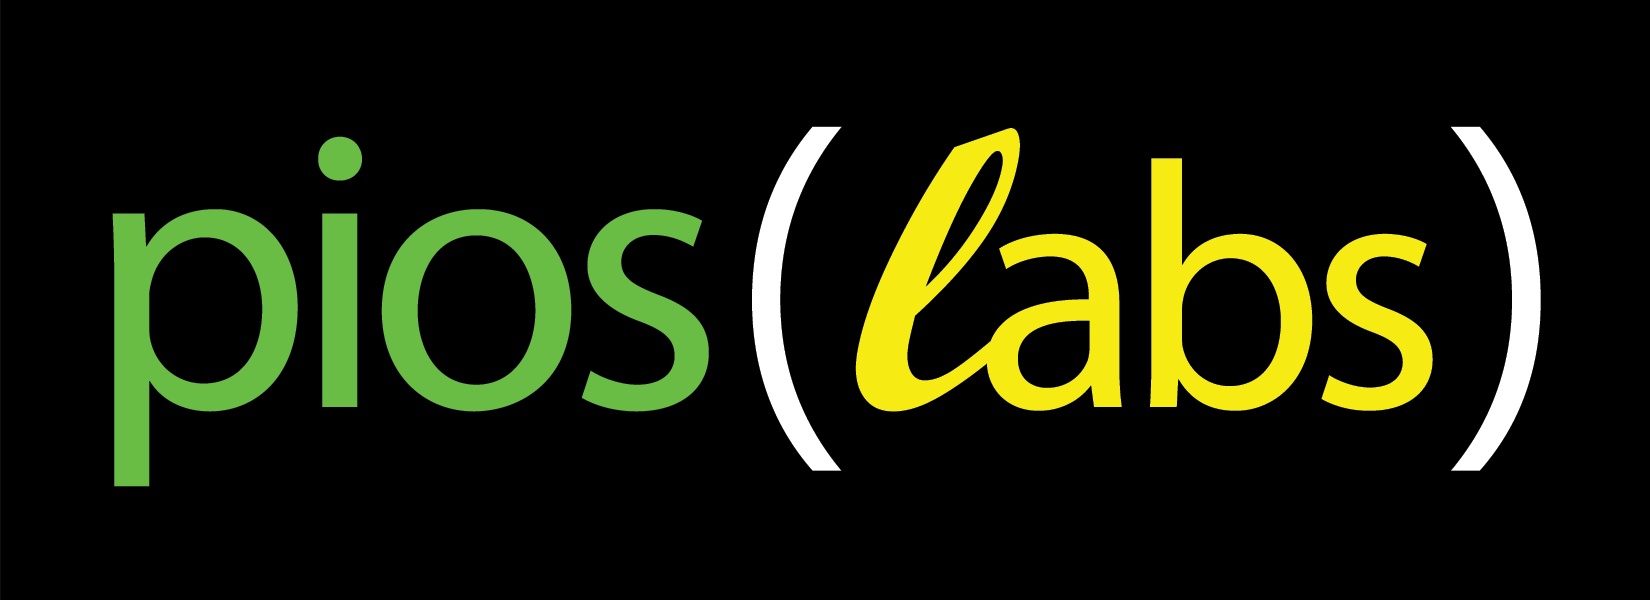 Logo for Pios Labs